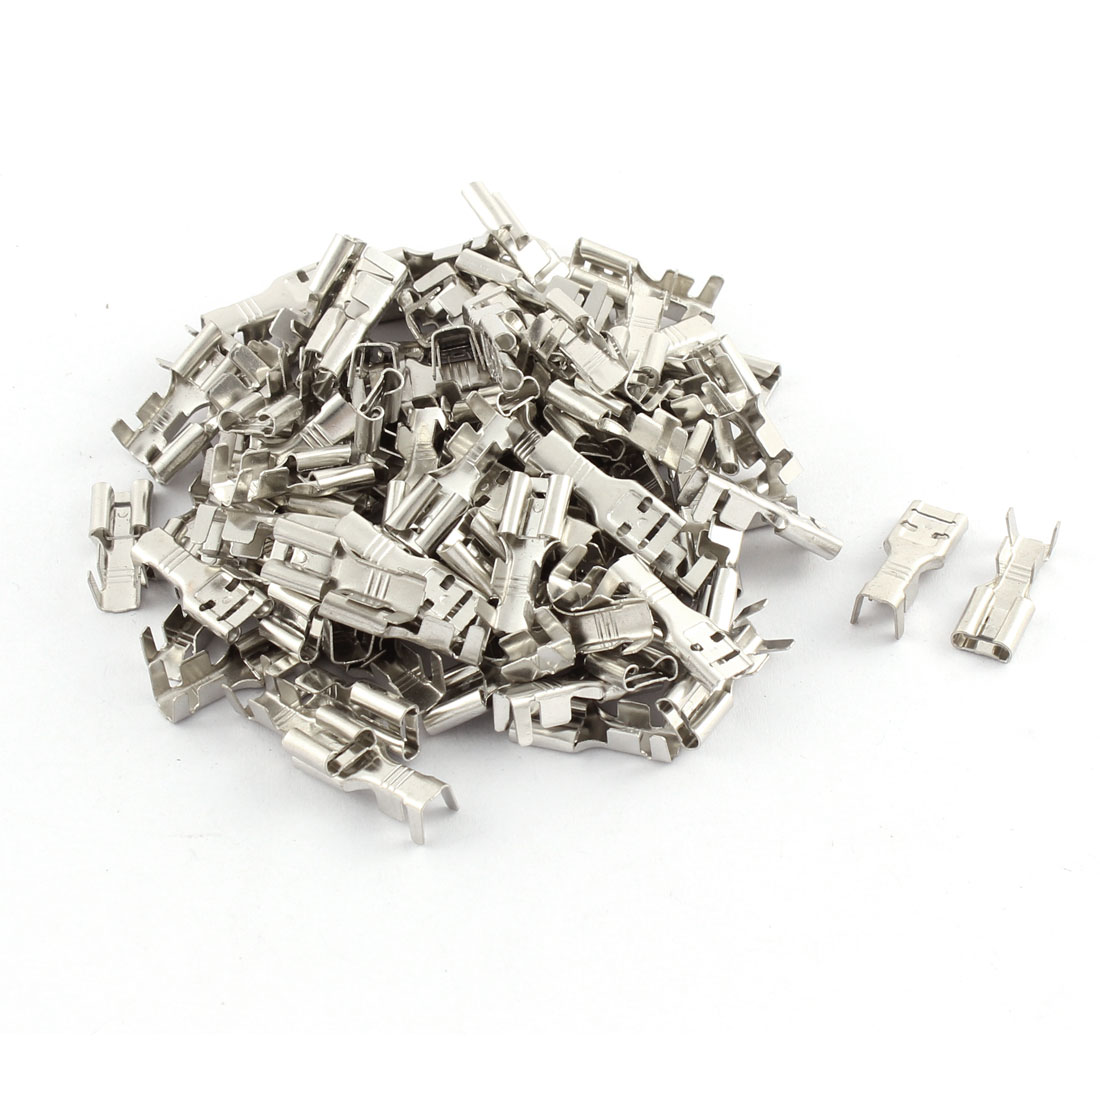 100 Pcs Car Speaker 7.8mm Female Spade Terminal Wire Connector Silver Tone